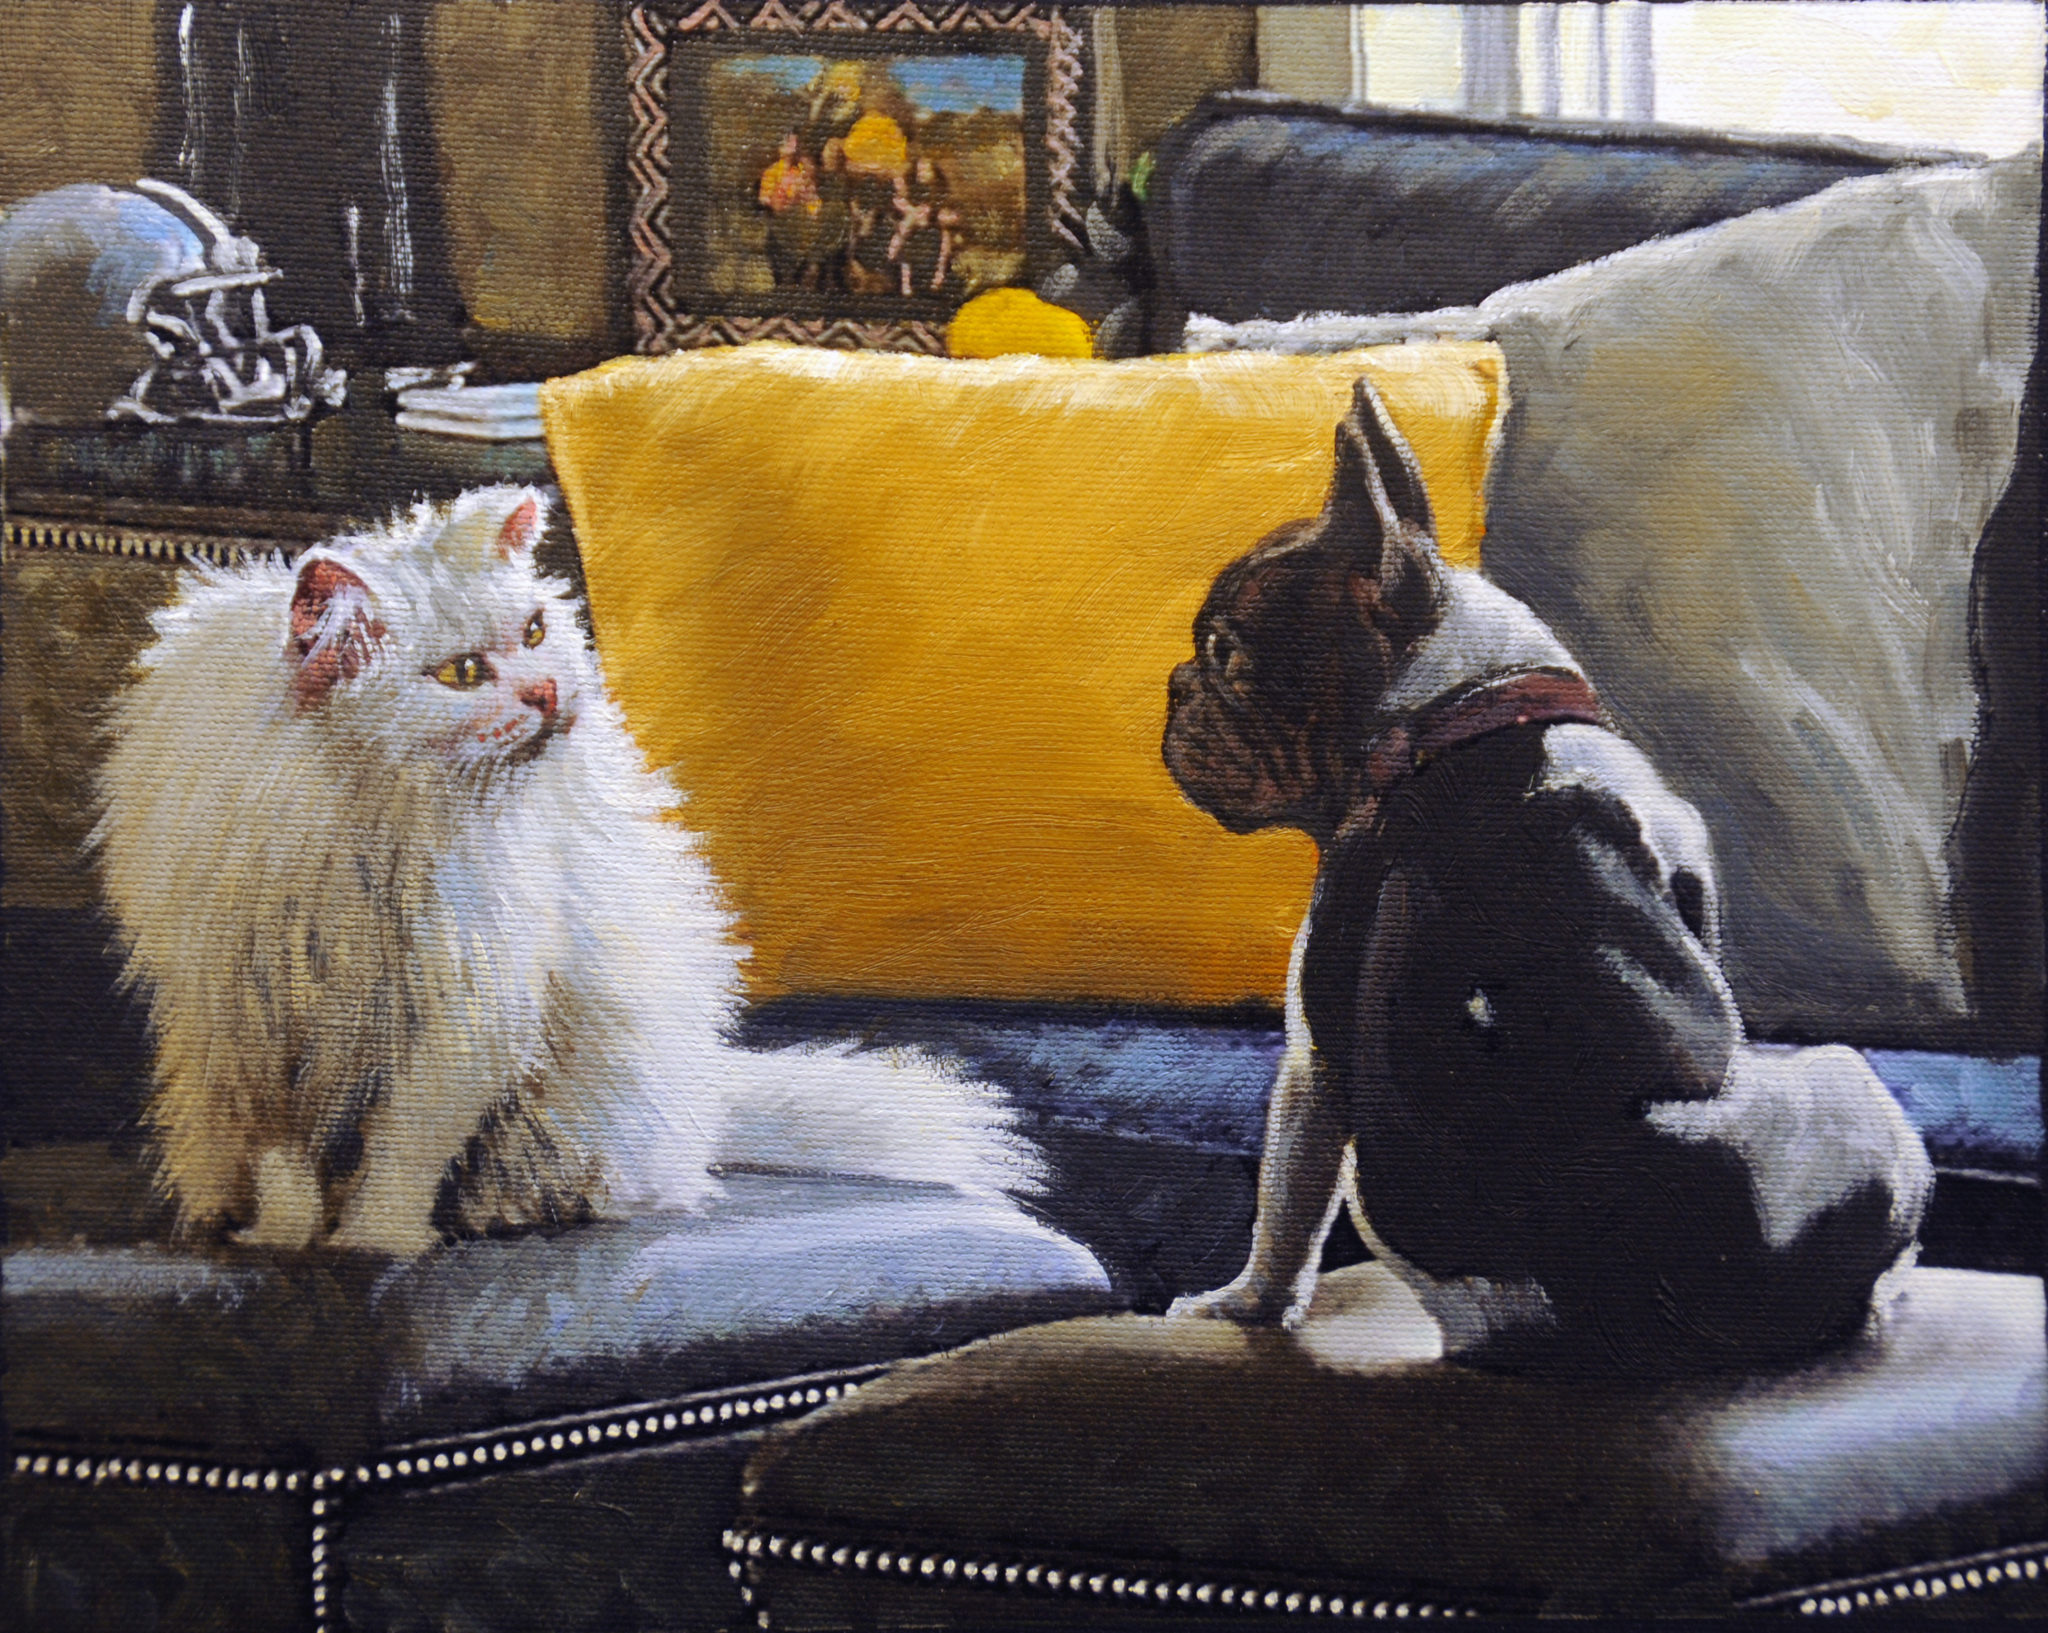 This Post and Paint work of art forever captures the everyday dynamics between two pets.